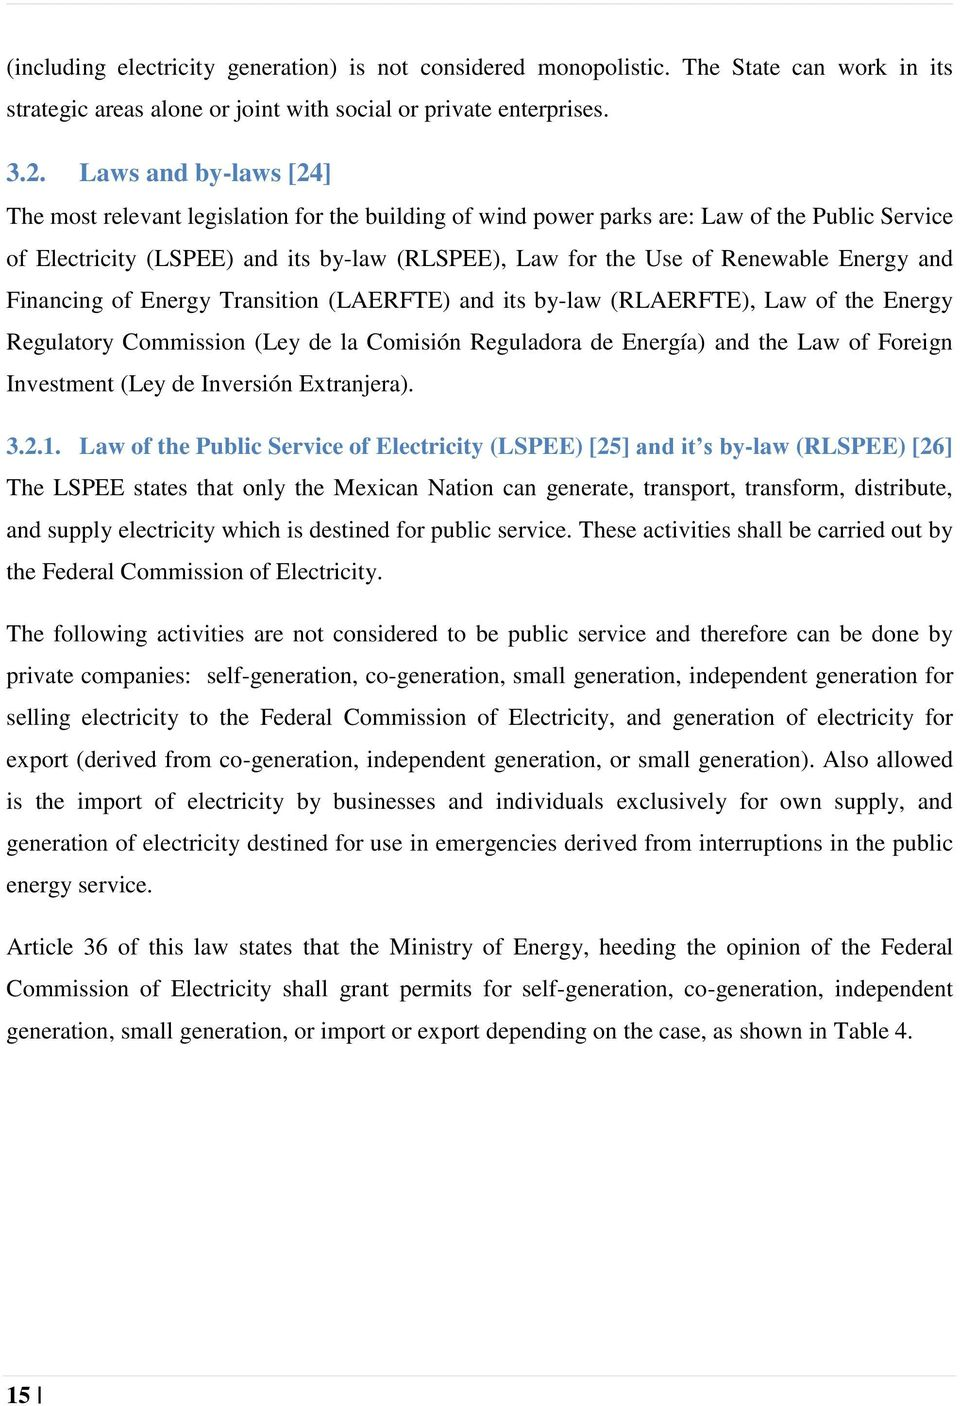 Energy and Financing of Energy Transition (LAERFTE) and its by-law (RLAERFTE), Law of the Energy Regulatory Commission (Ley de la Comisión Reguladora de Energía) and the Law of Foreign Investment